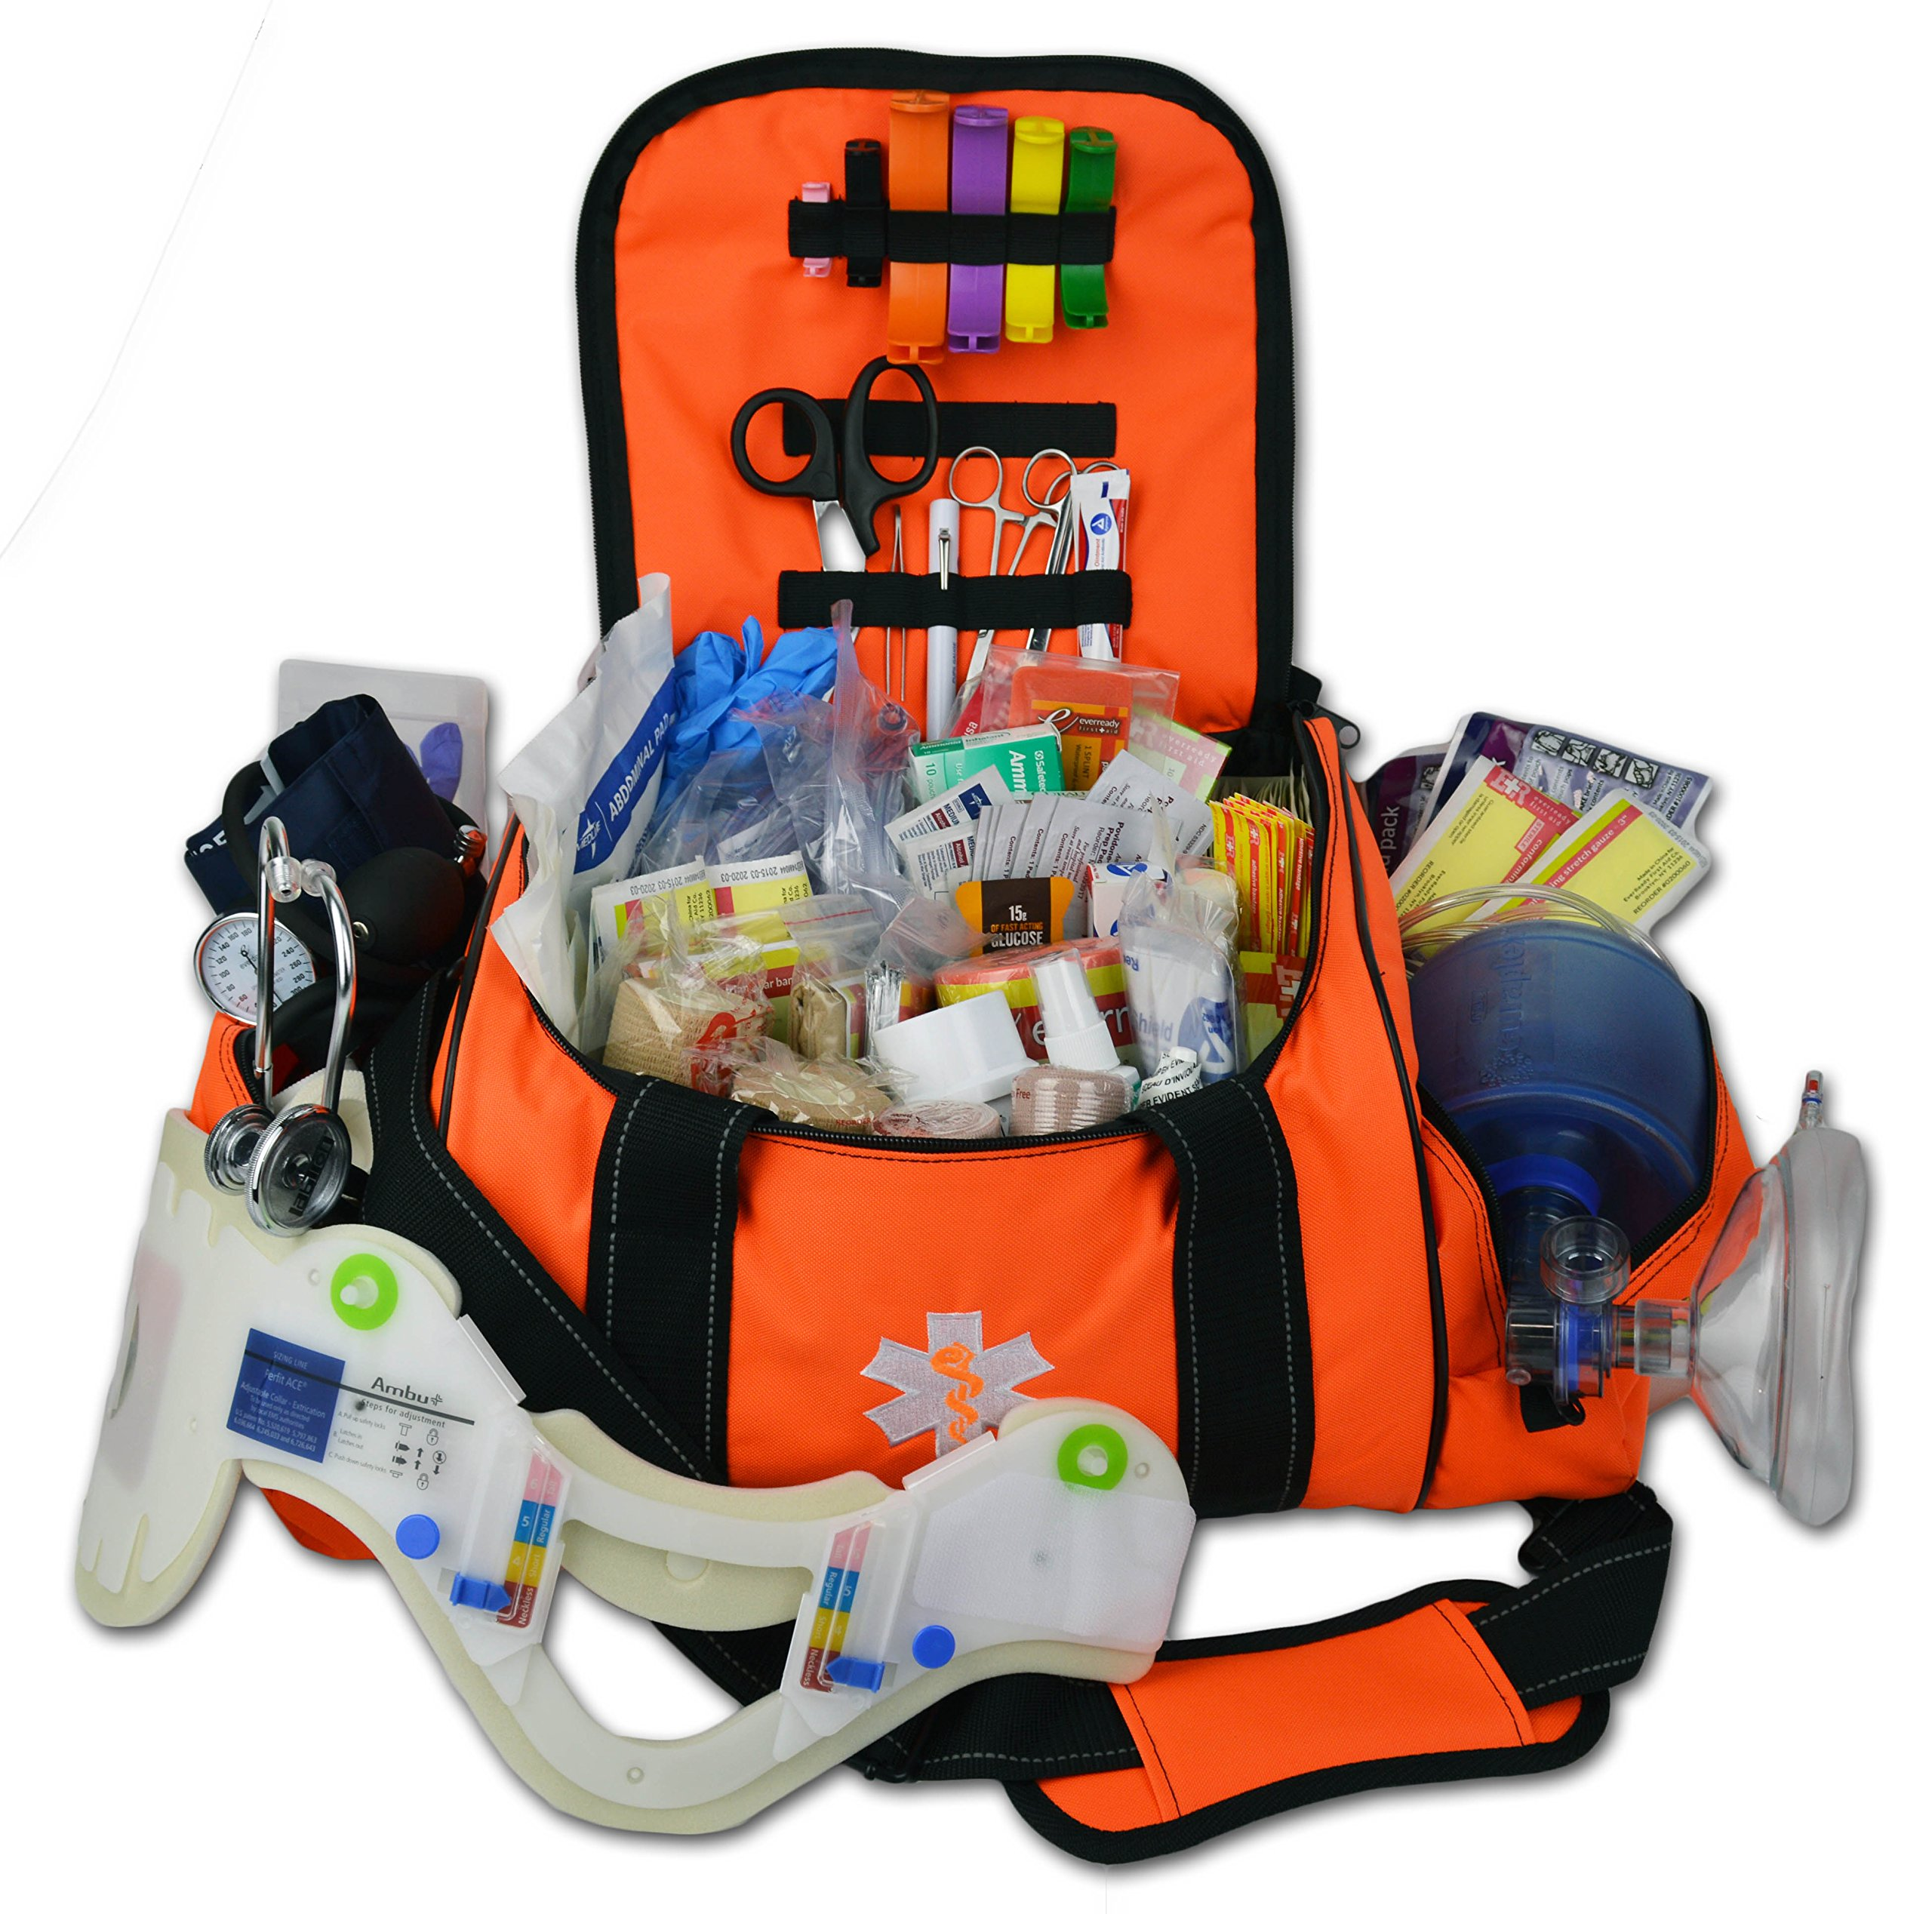 Lightning X Deluxe Stocked Large EMT First Aid Trauma Bag Fill Kit w/Emergency Medical Supplies (Fluorescent Orange) by Lightning X Products